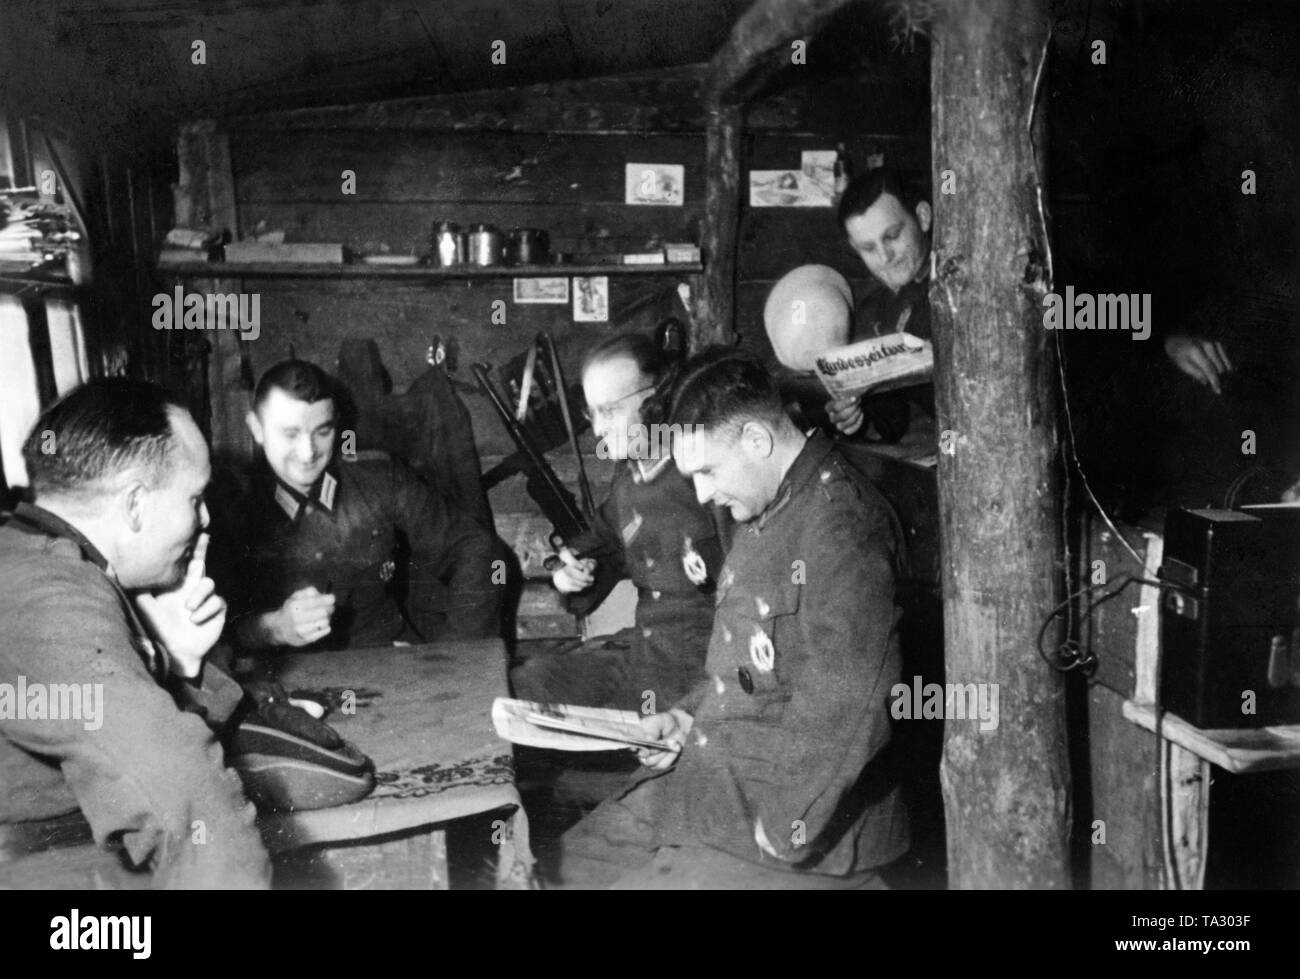 Officers of the Wehrmacht, presumably the Army Group North, in a bunker near Suchaja Wetoschj in the region of Demyansk. Photo: war correspondent Fenzke. Stock Photo